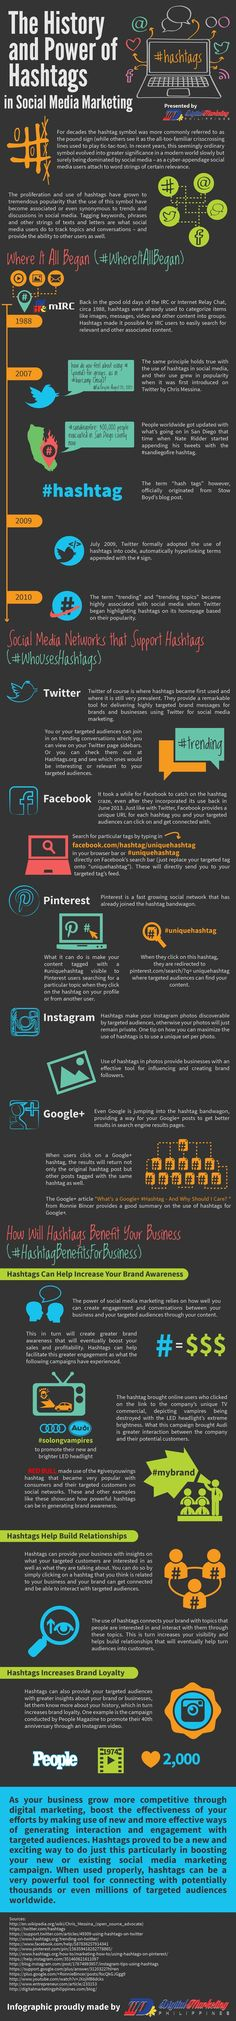 The History of #Hashtags in Social Media Marketing [INFOGRAPHIC]